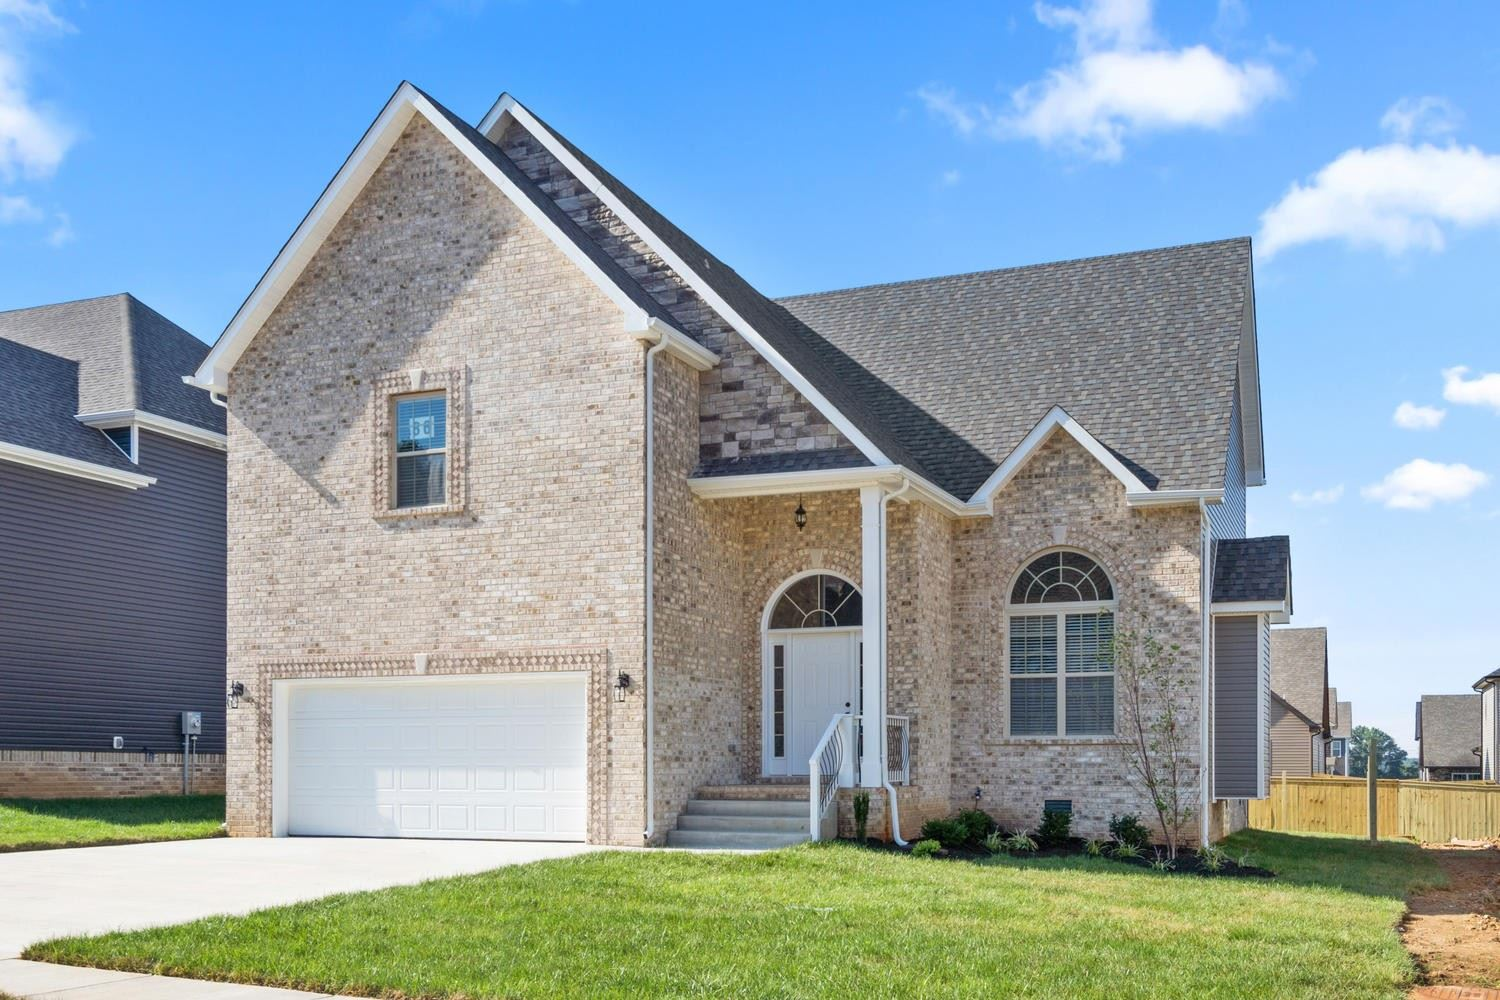 163 Hereford Farm, Clarksville, TN 37043 - MLS#: 2223056